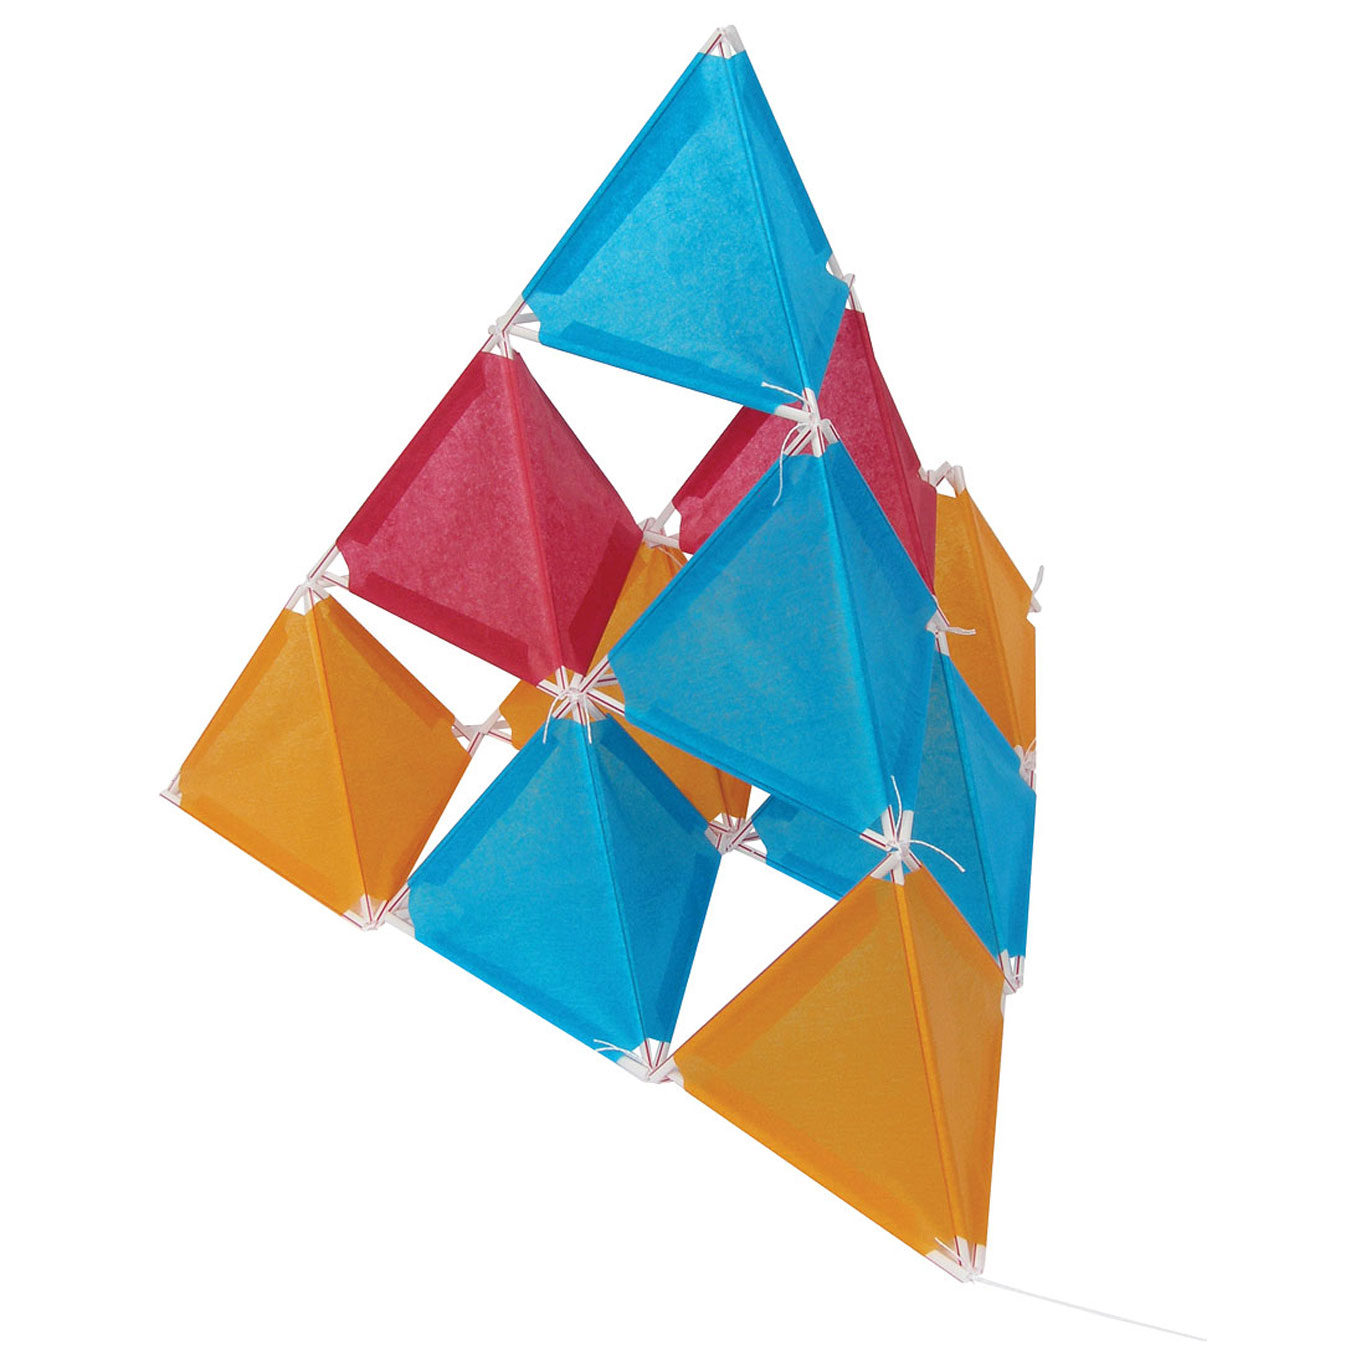 KaZoon-Kite-10-cell-1366-0318.jpg